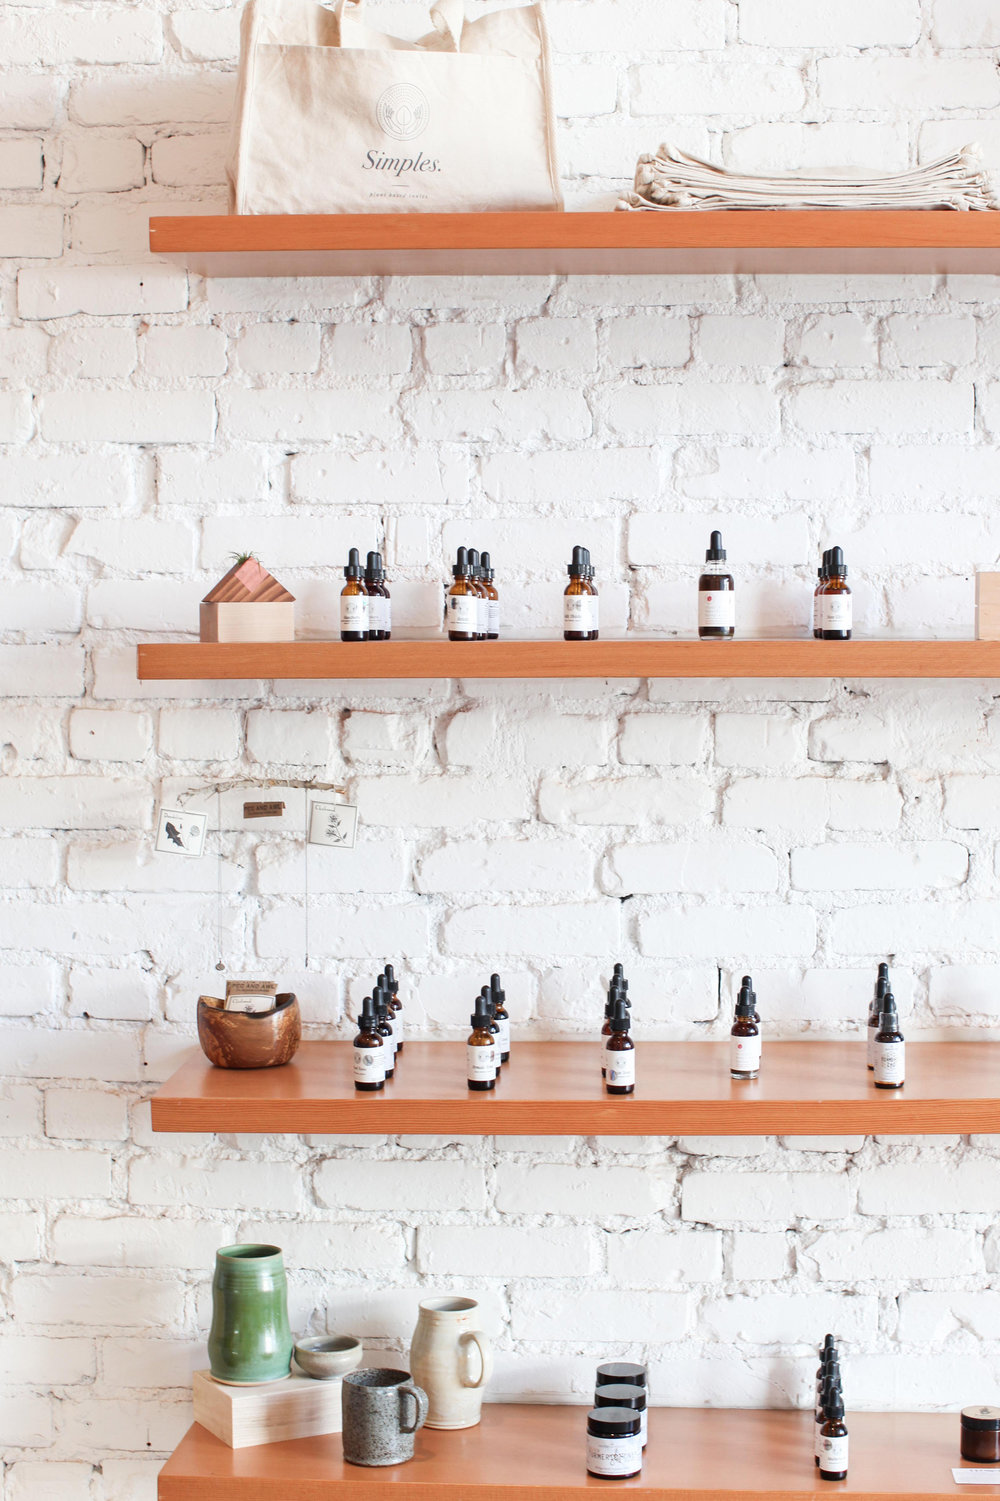 Simple Tonics by Traci Donat | Simples Founder Shares Her Personal Journey with Plant as Medicine.